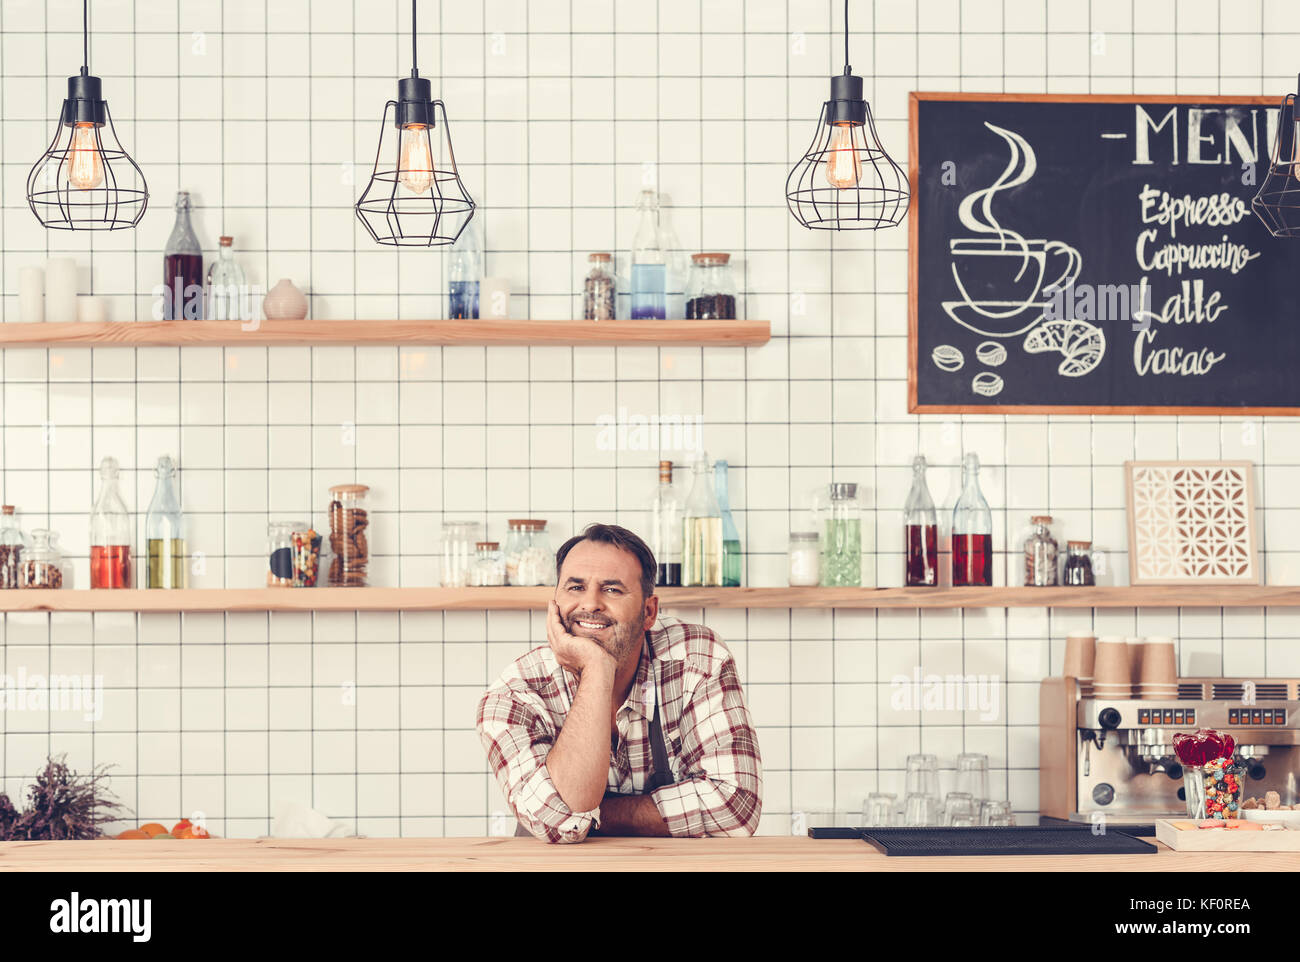 cafe - Stock Image